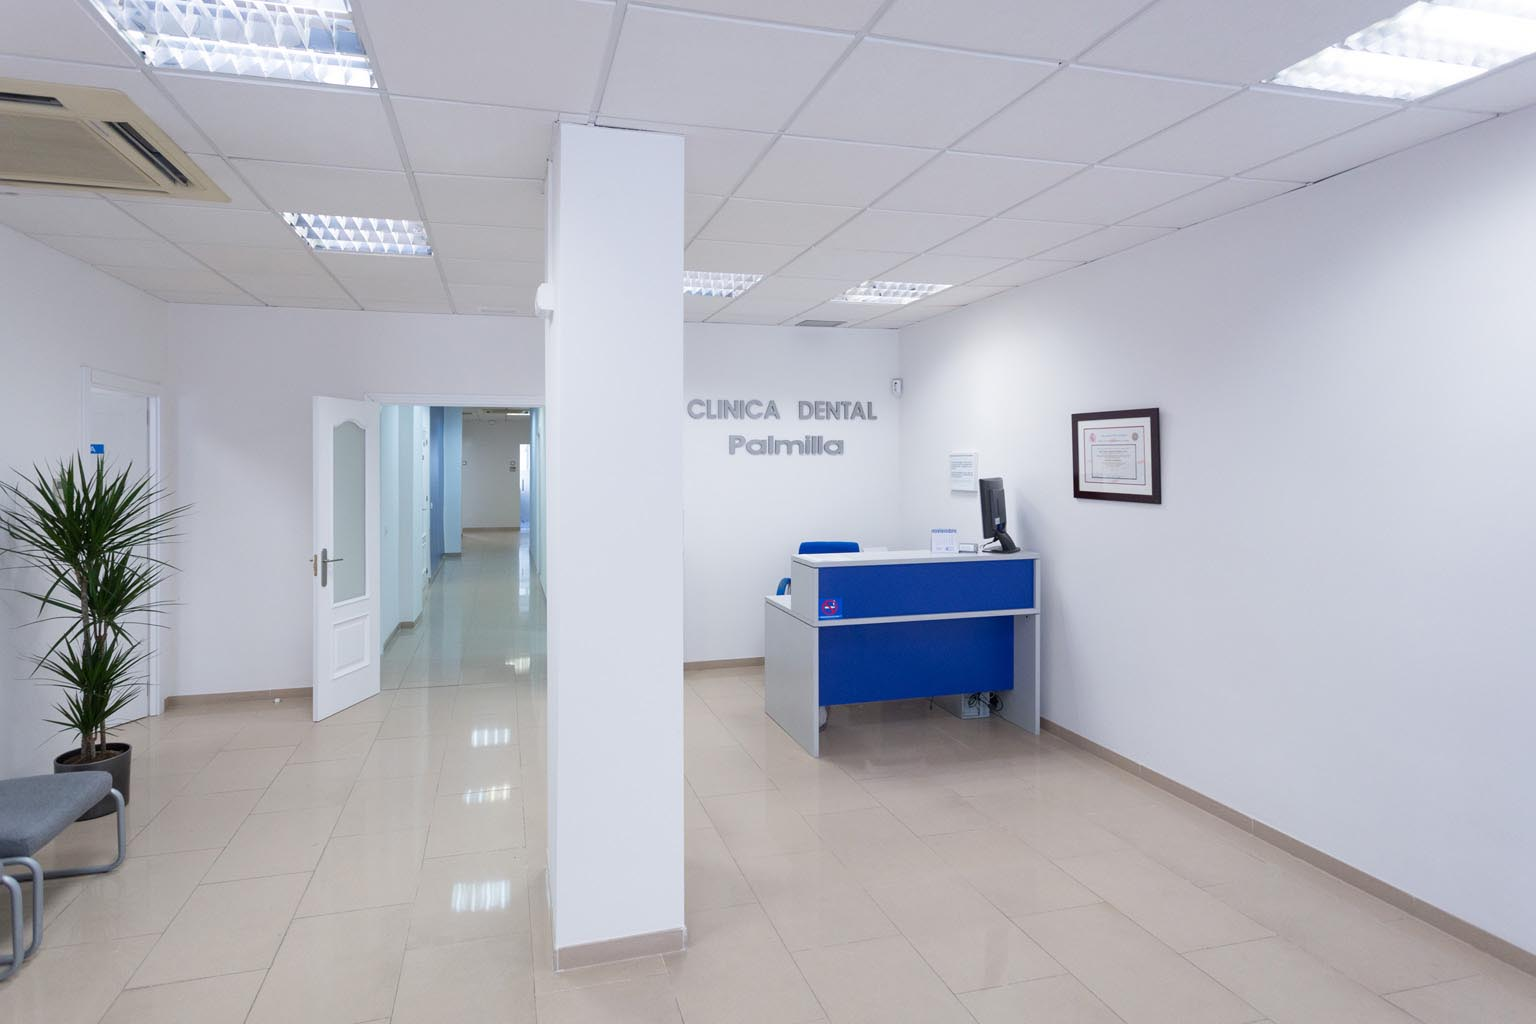 Interior Clínica dental en Almería - Clínica Dental Palmilla